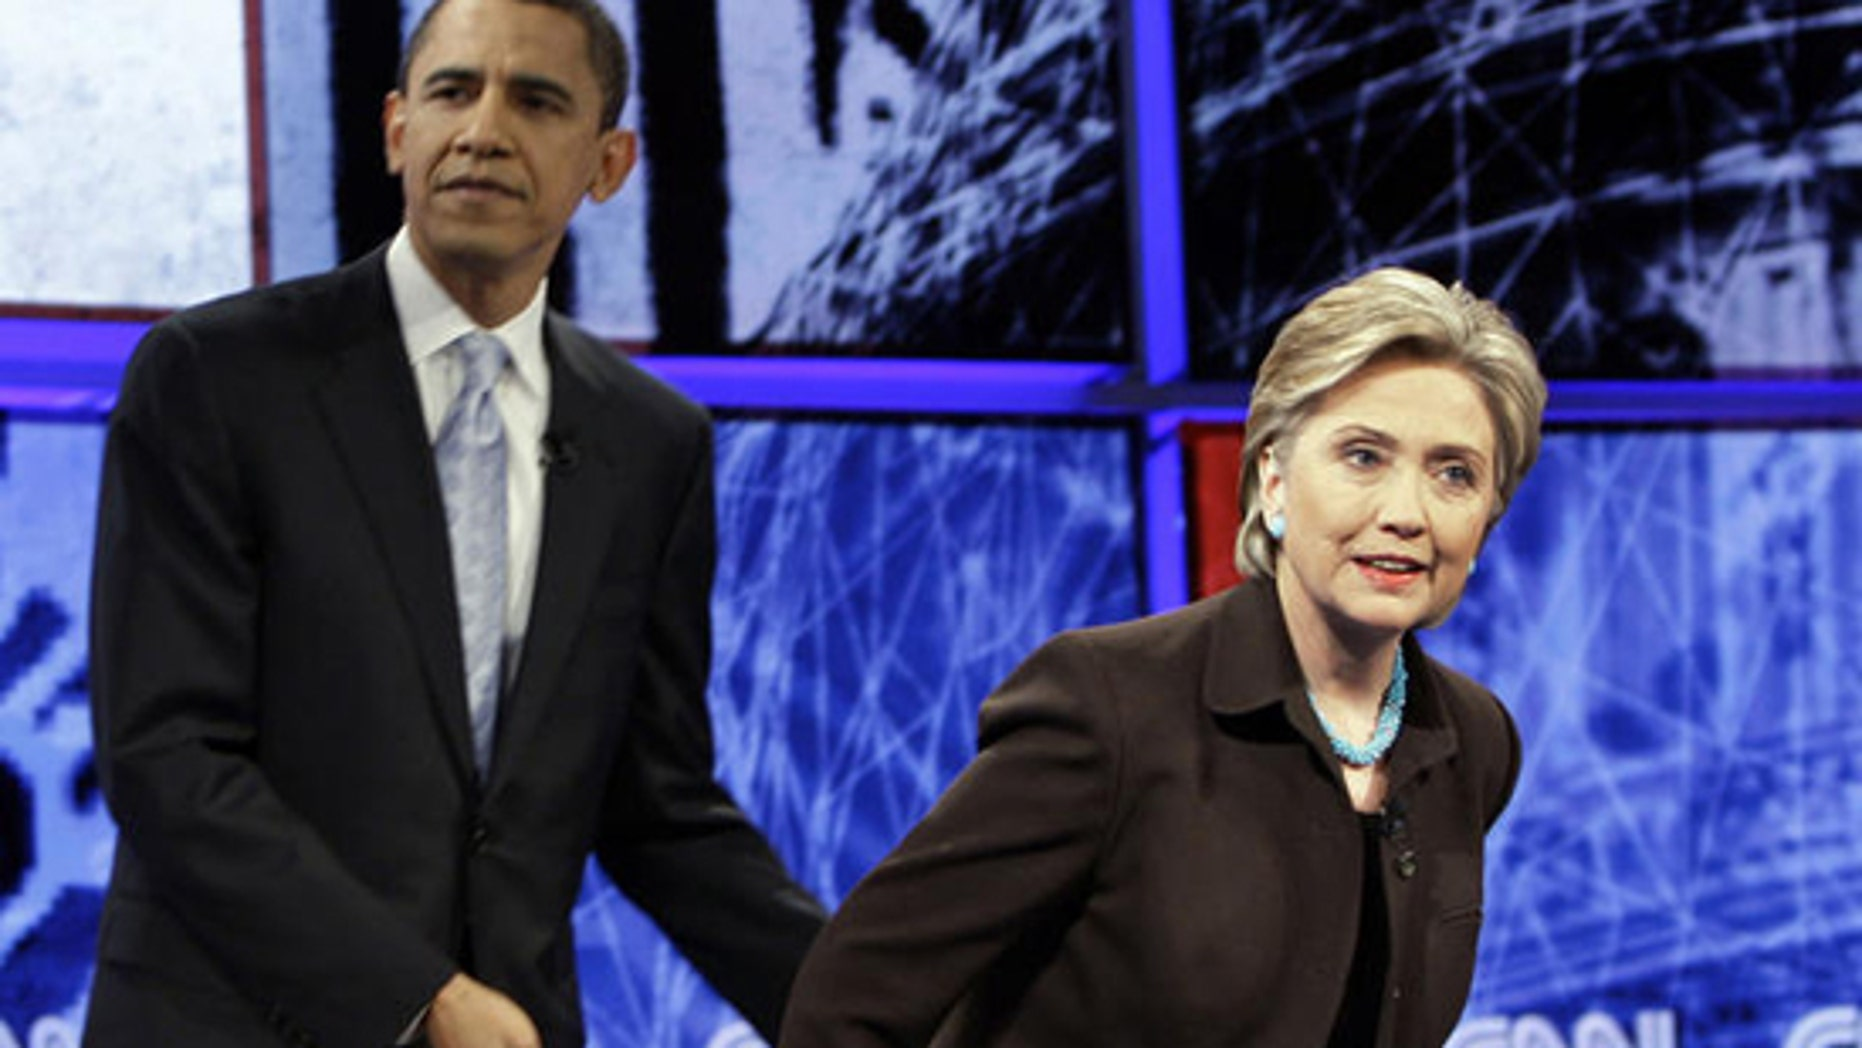 FILE: Sen. Barack Obama first pledged opening up legislative negotiations to C-SPAN cameras during a Democratic presidential primary debate with Sen. Hillary Clinton in Los Angeles on Jan. 31, 2008. In this photo, Obama helps Clinton to her seat before the start of that debate. (AP Photo)